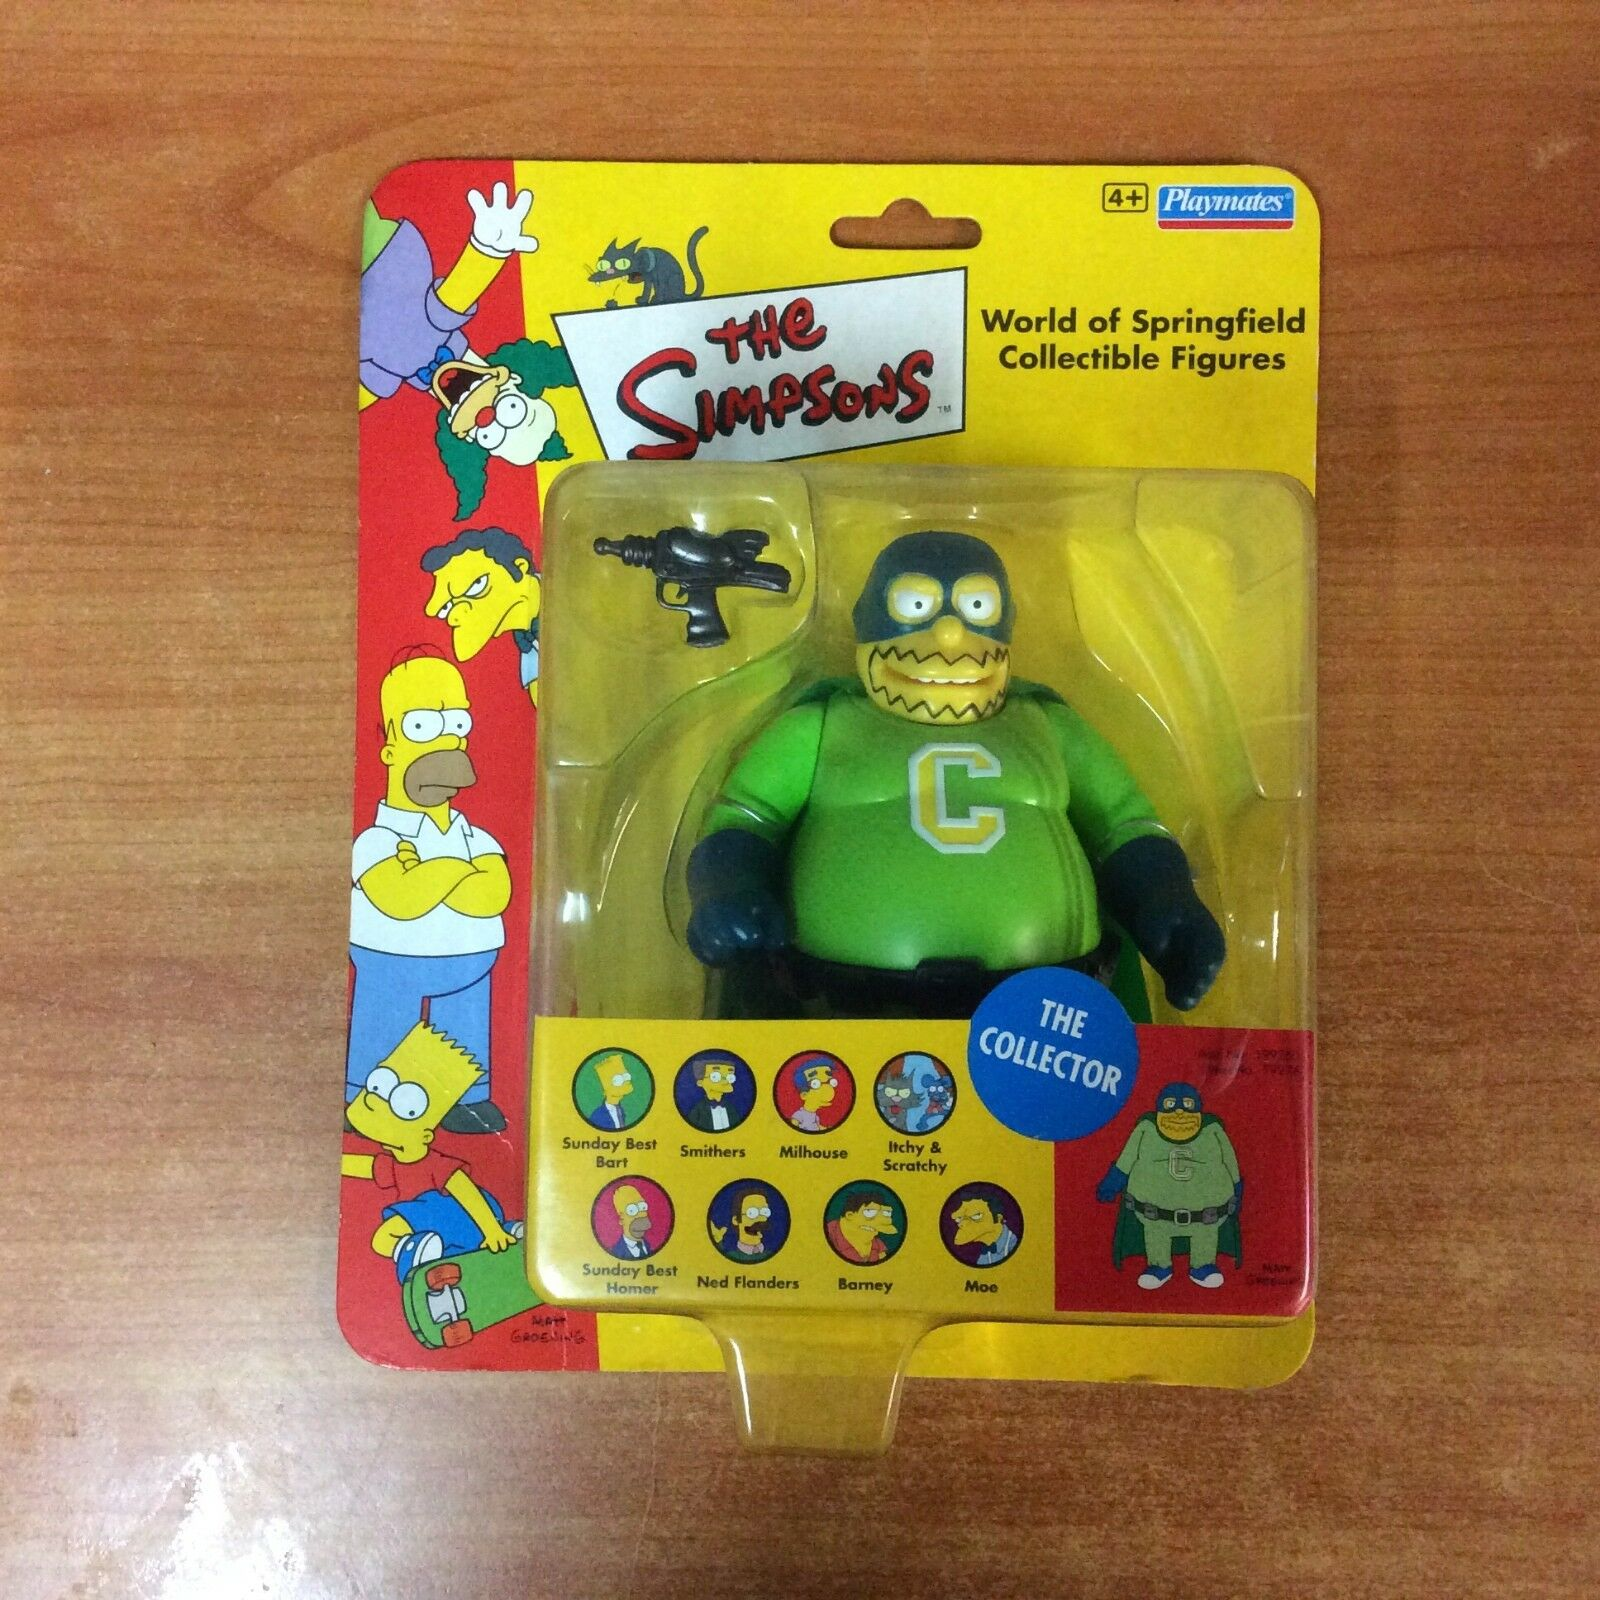 2001 The Simpsons World of Springfield Collectible Figures - The Collector -New